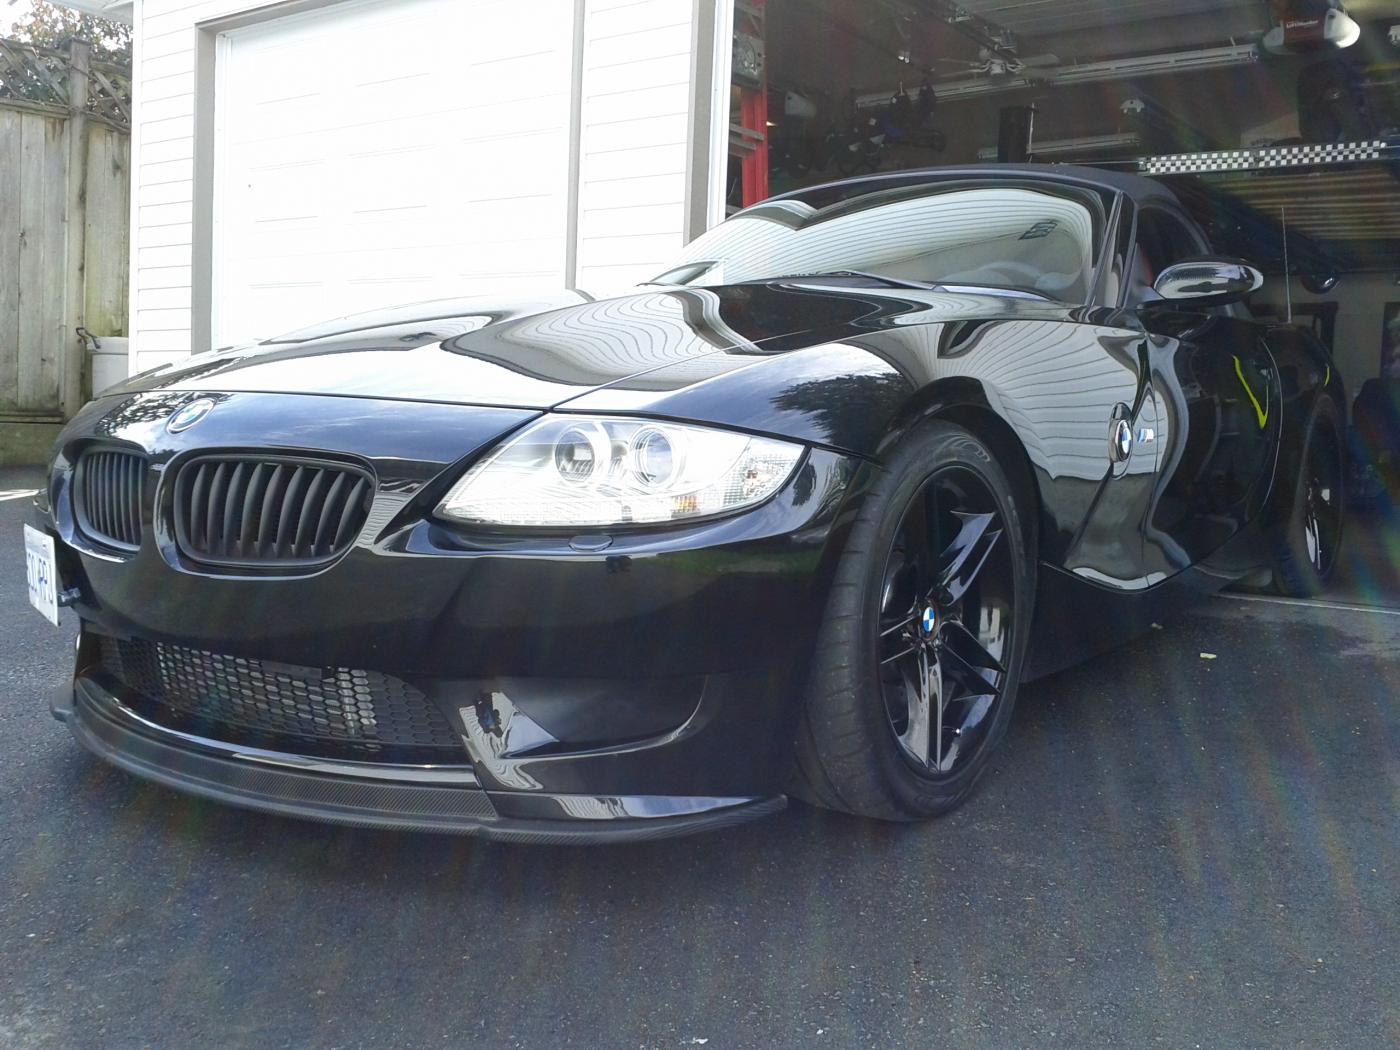 Supercharged Ess Z4m Roadster